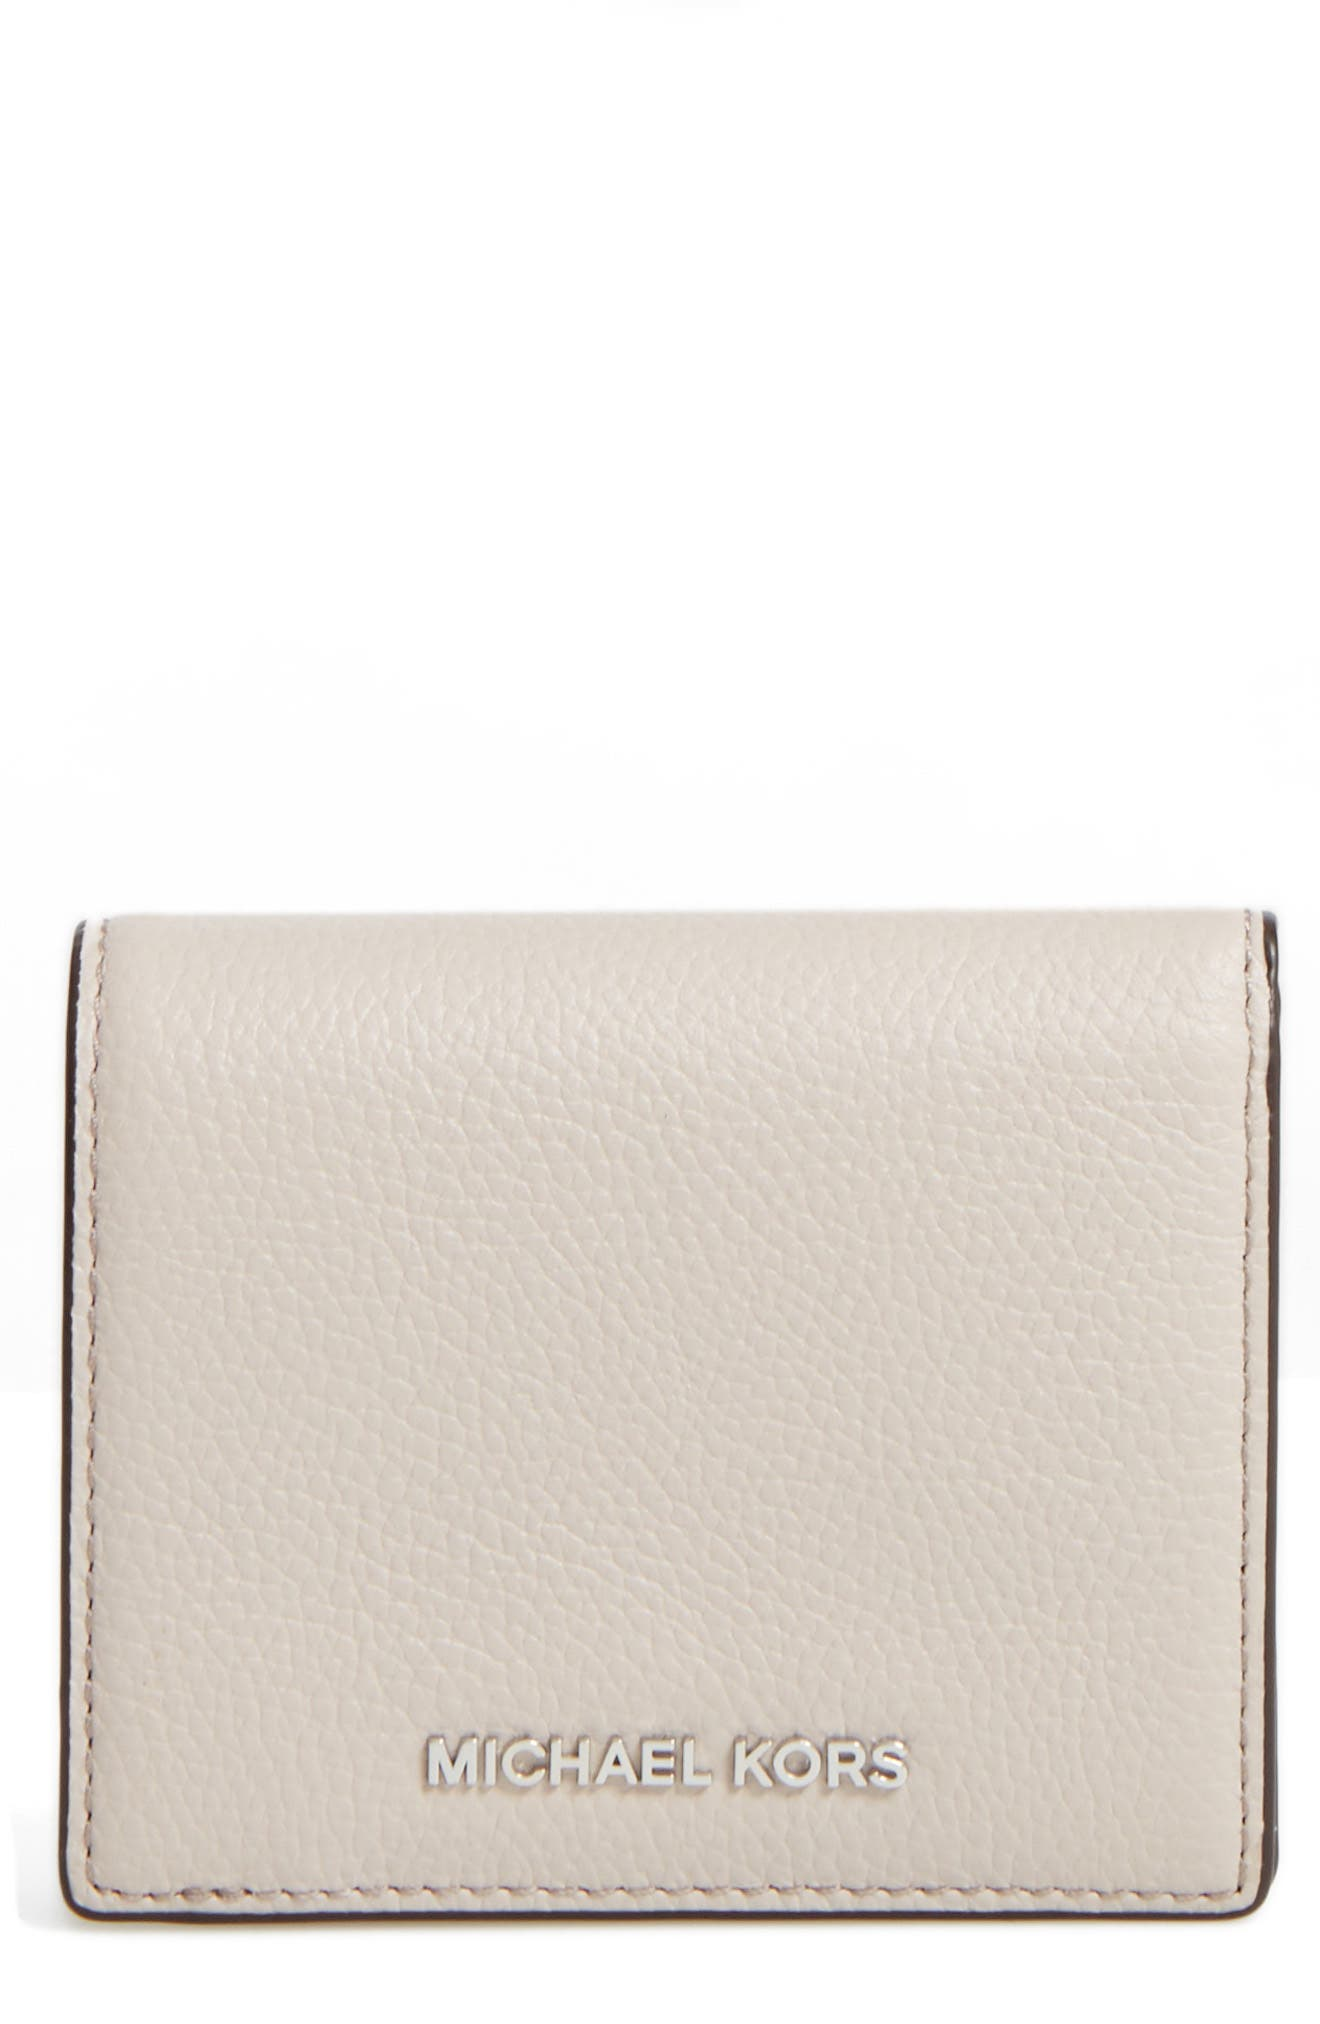 MICHAEL Michael Kors Mercer Leather RFID Cardholder Wallet